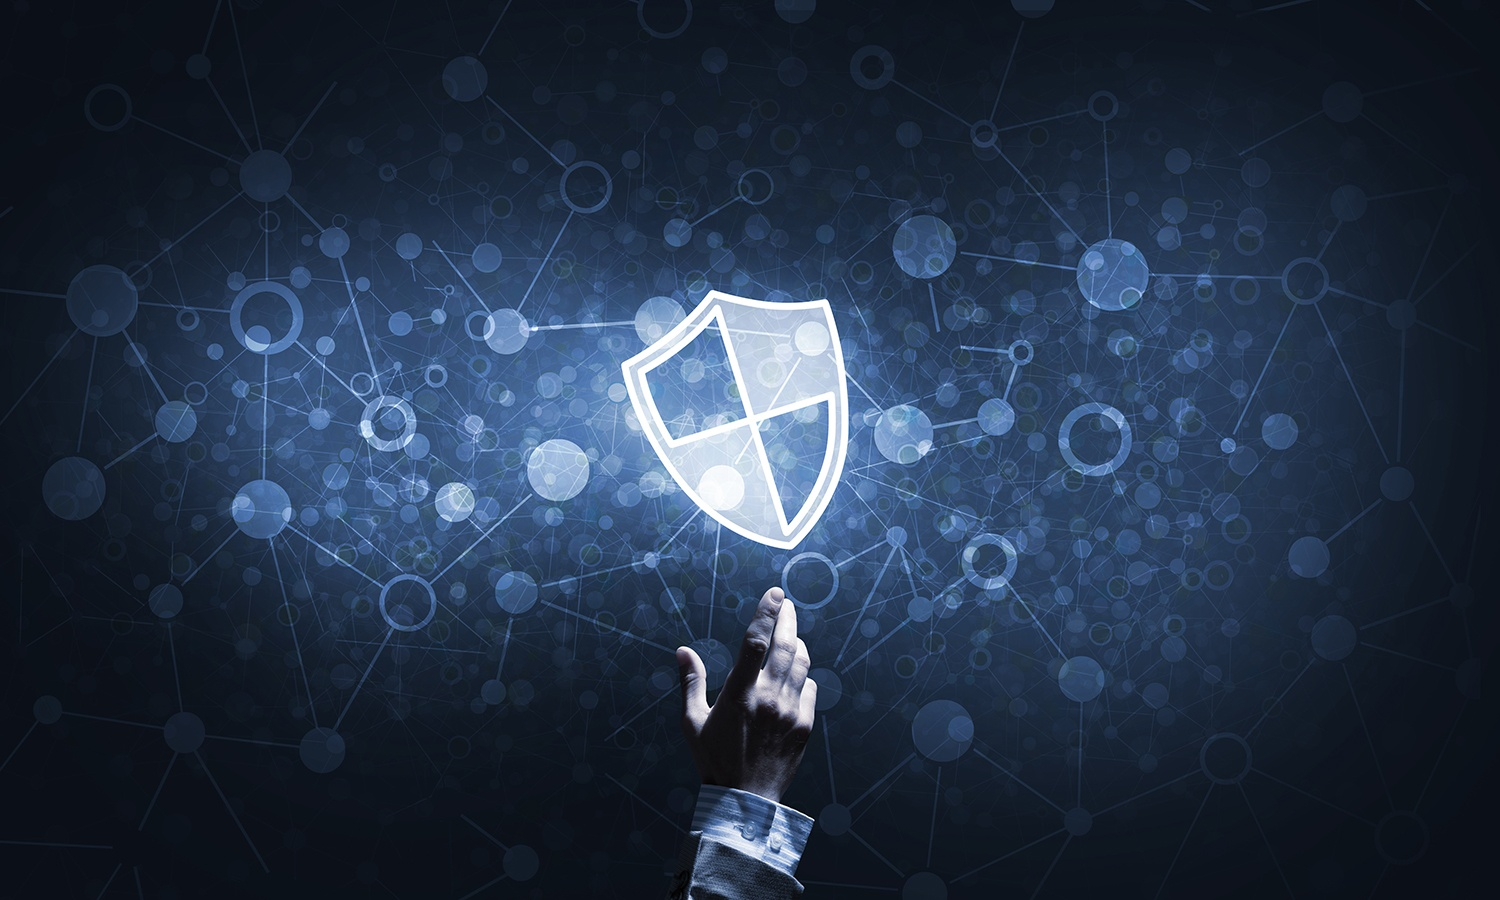 How to Mitigate Cybersecurity Risks in a Cost-Effective Manner